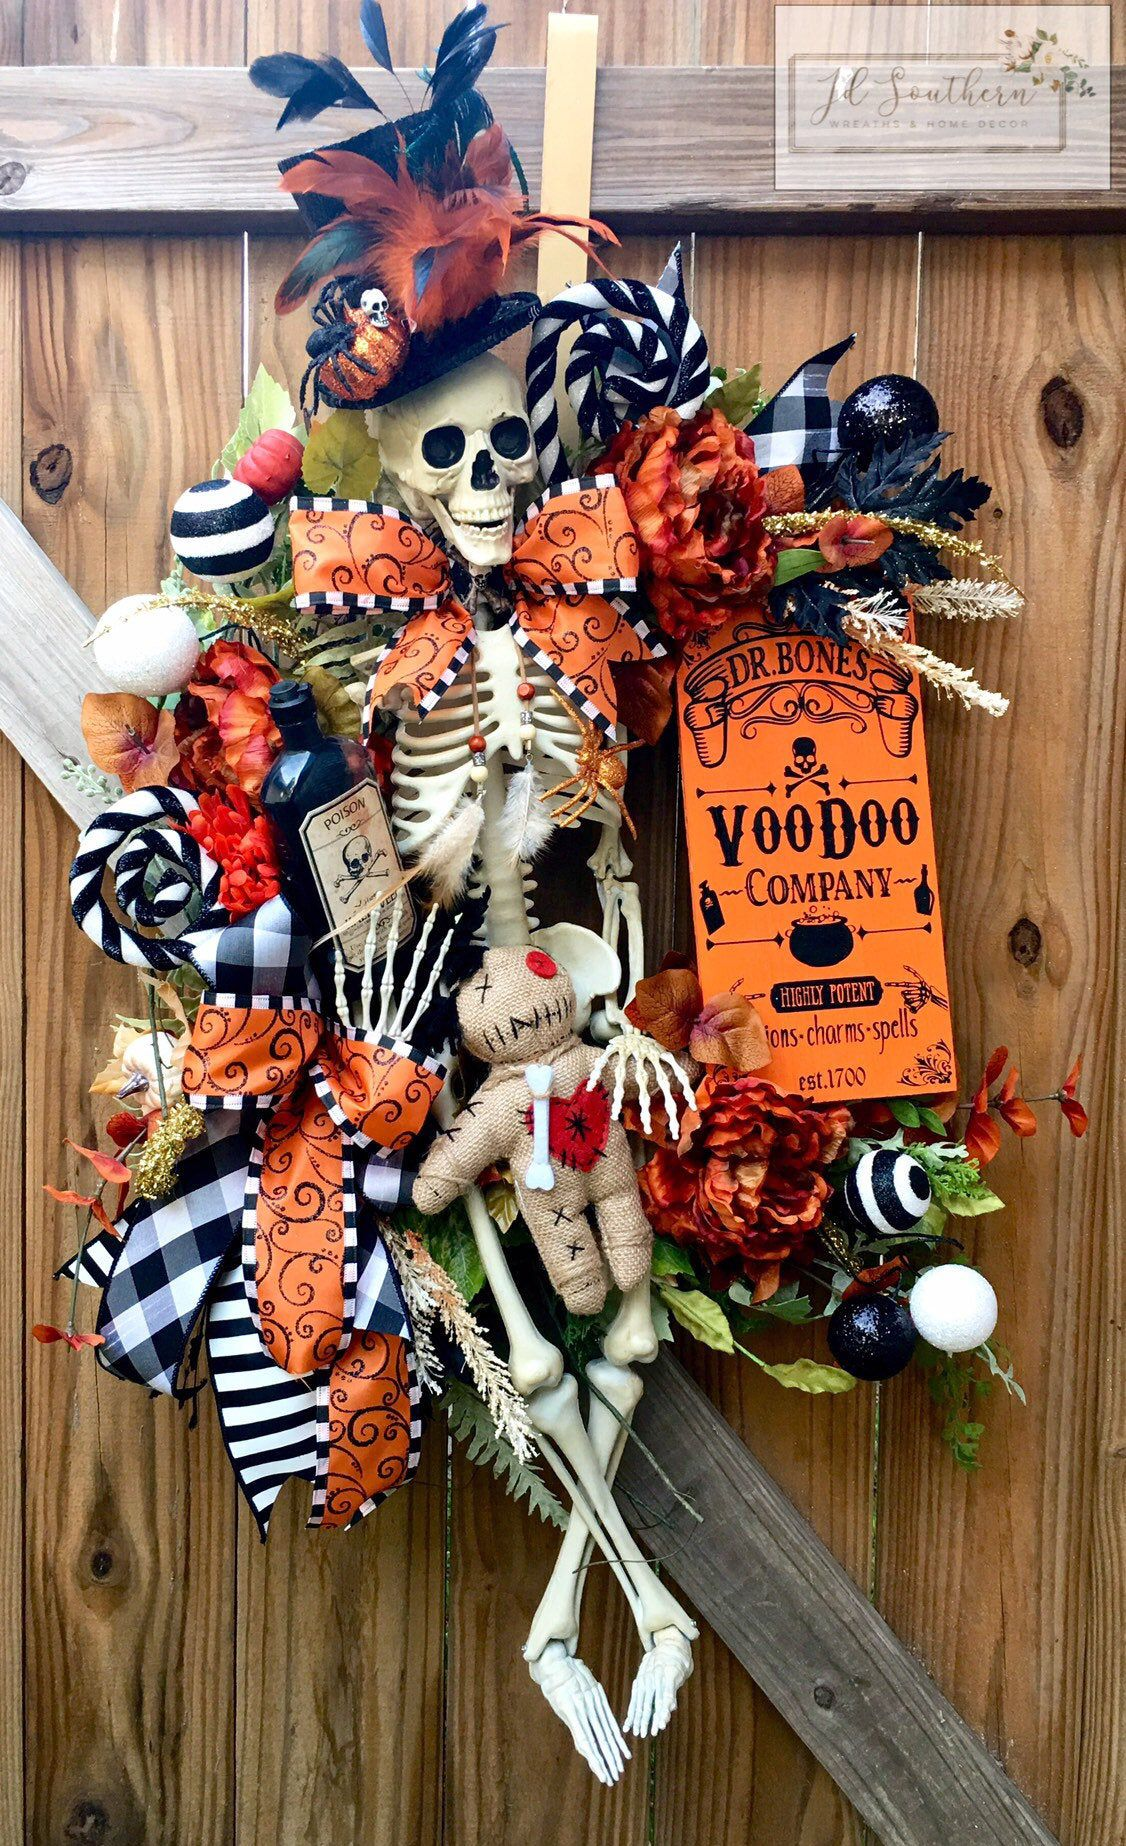 Halloween Wreath, Skeleton Wreath, Halloween Grapevine Wreath, Halloween Door Decor, Halloween Decorations #halloweendoordecor